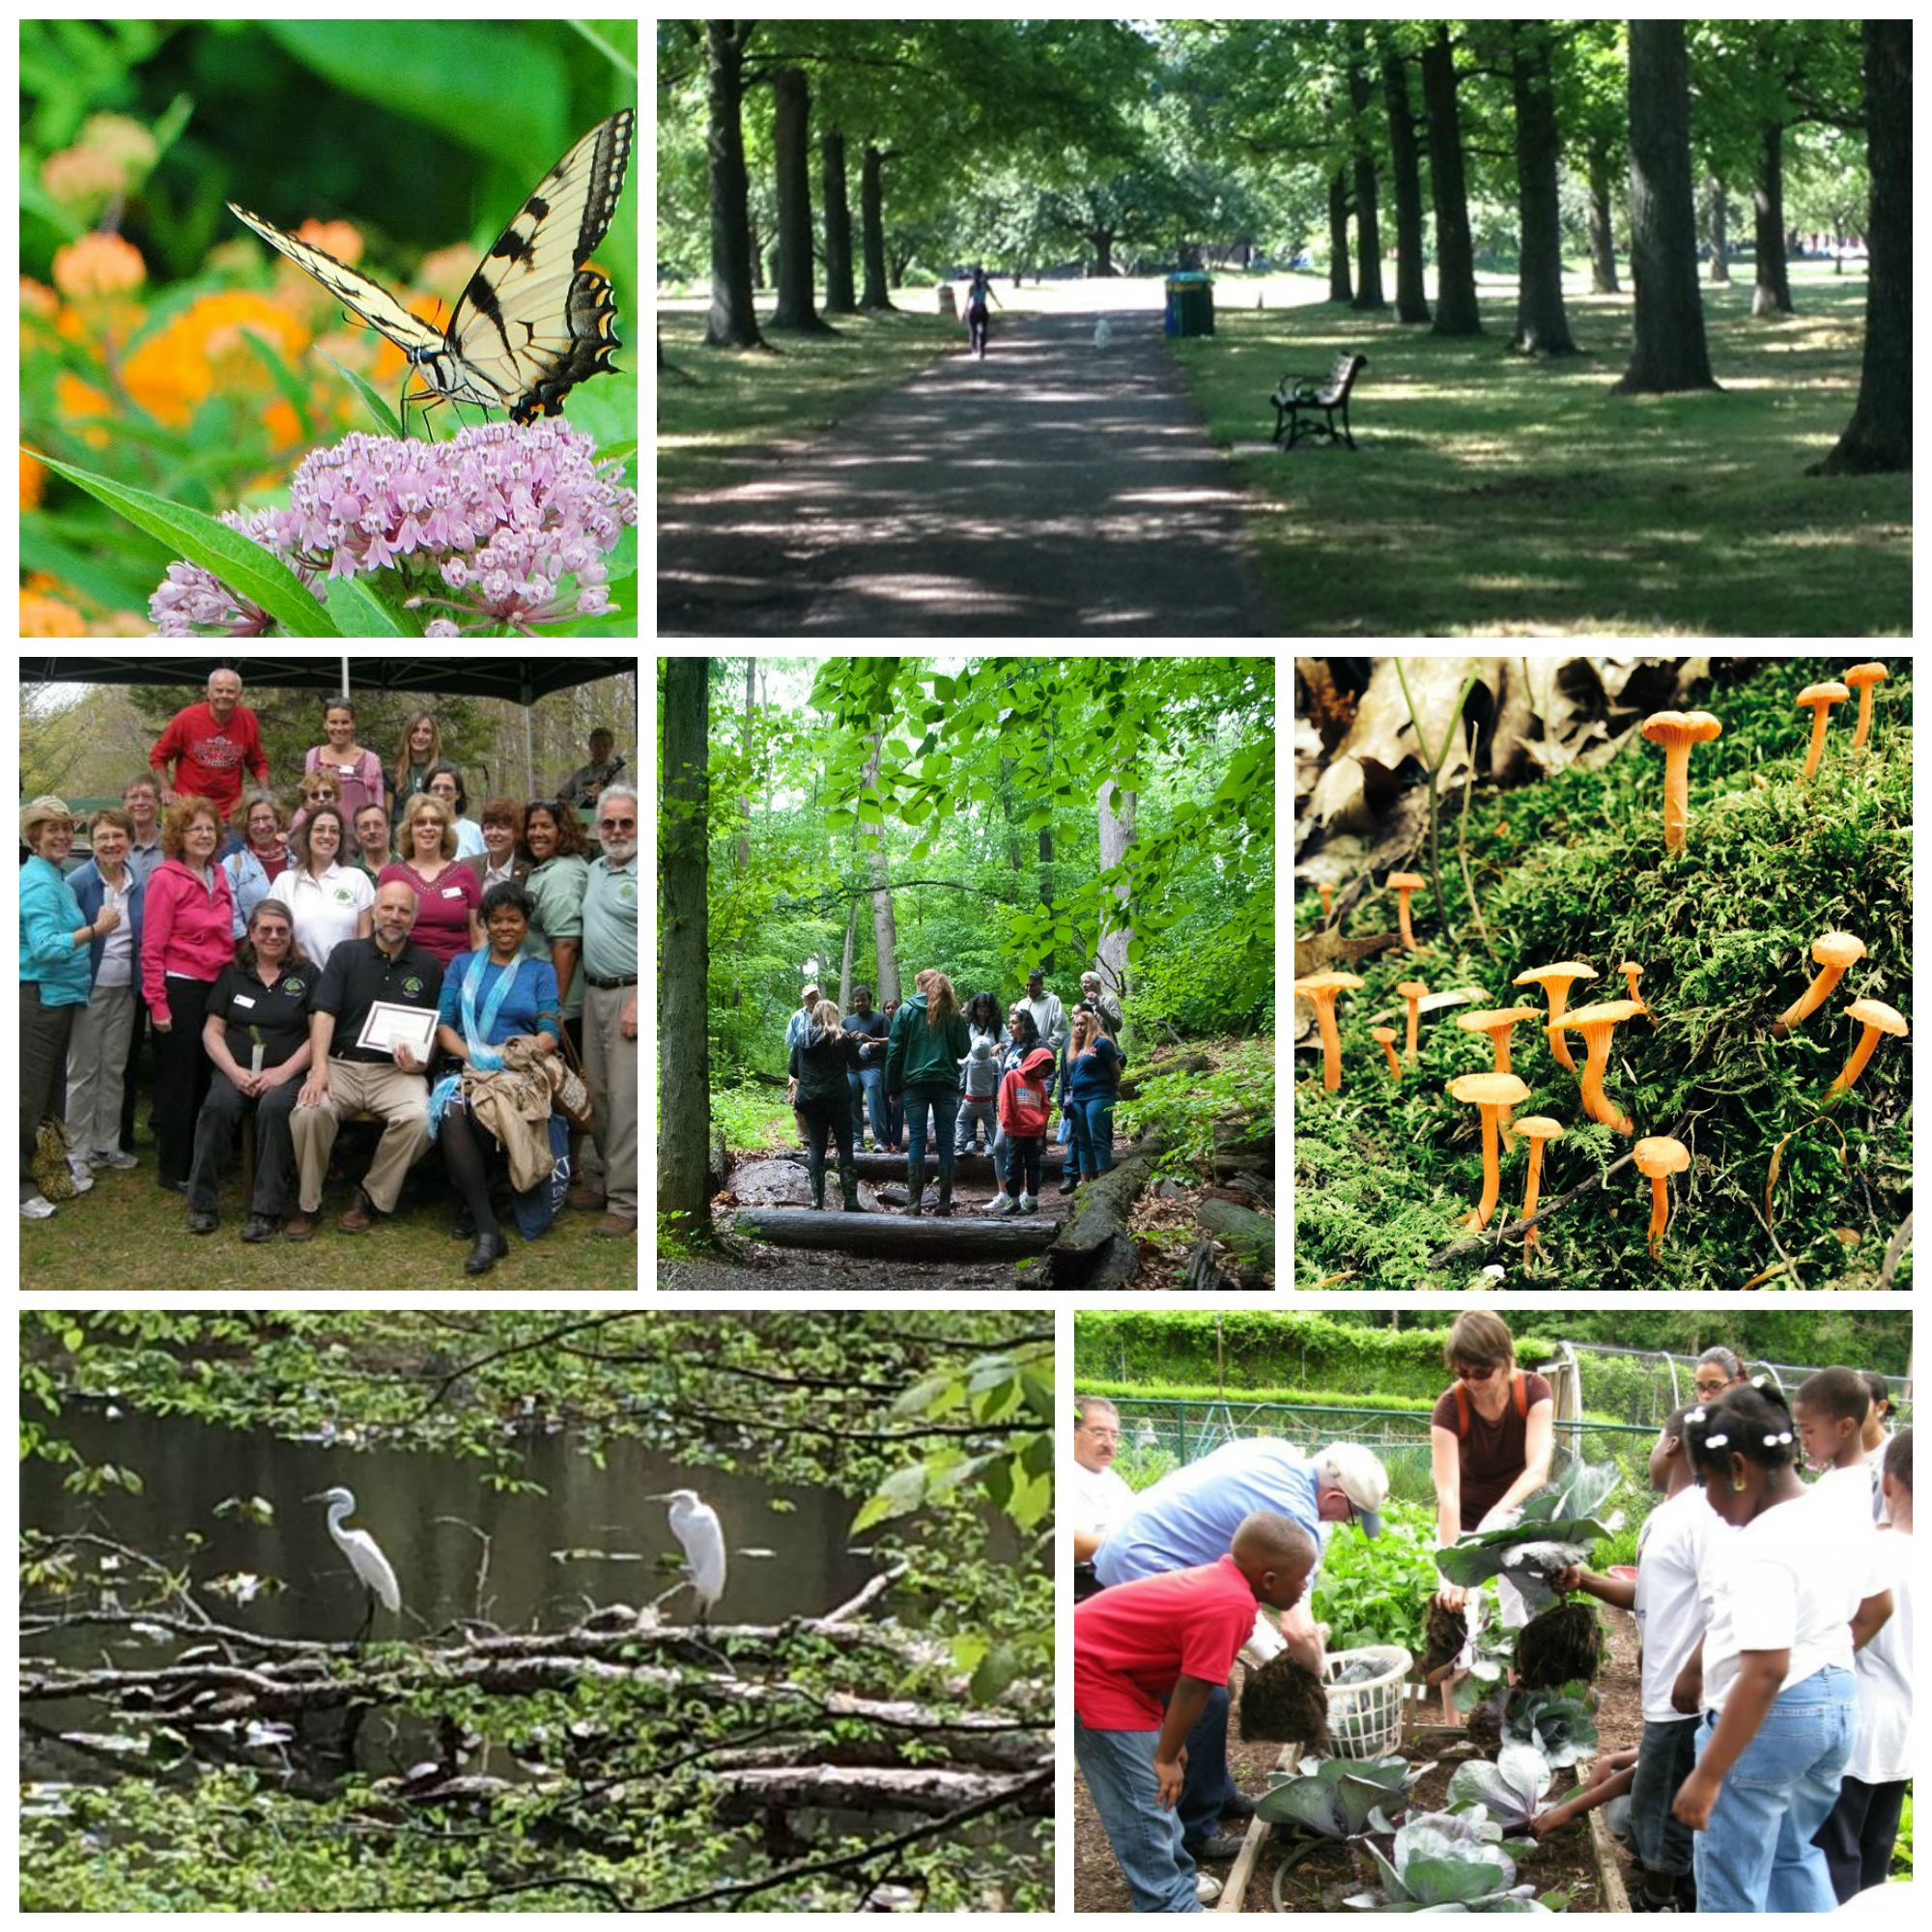 Go4Life Senior Fitness in Union County Parks (collage)